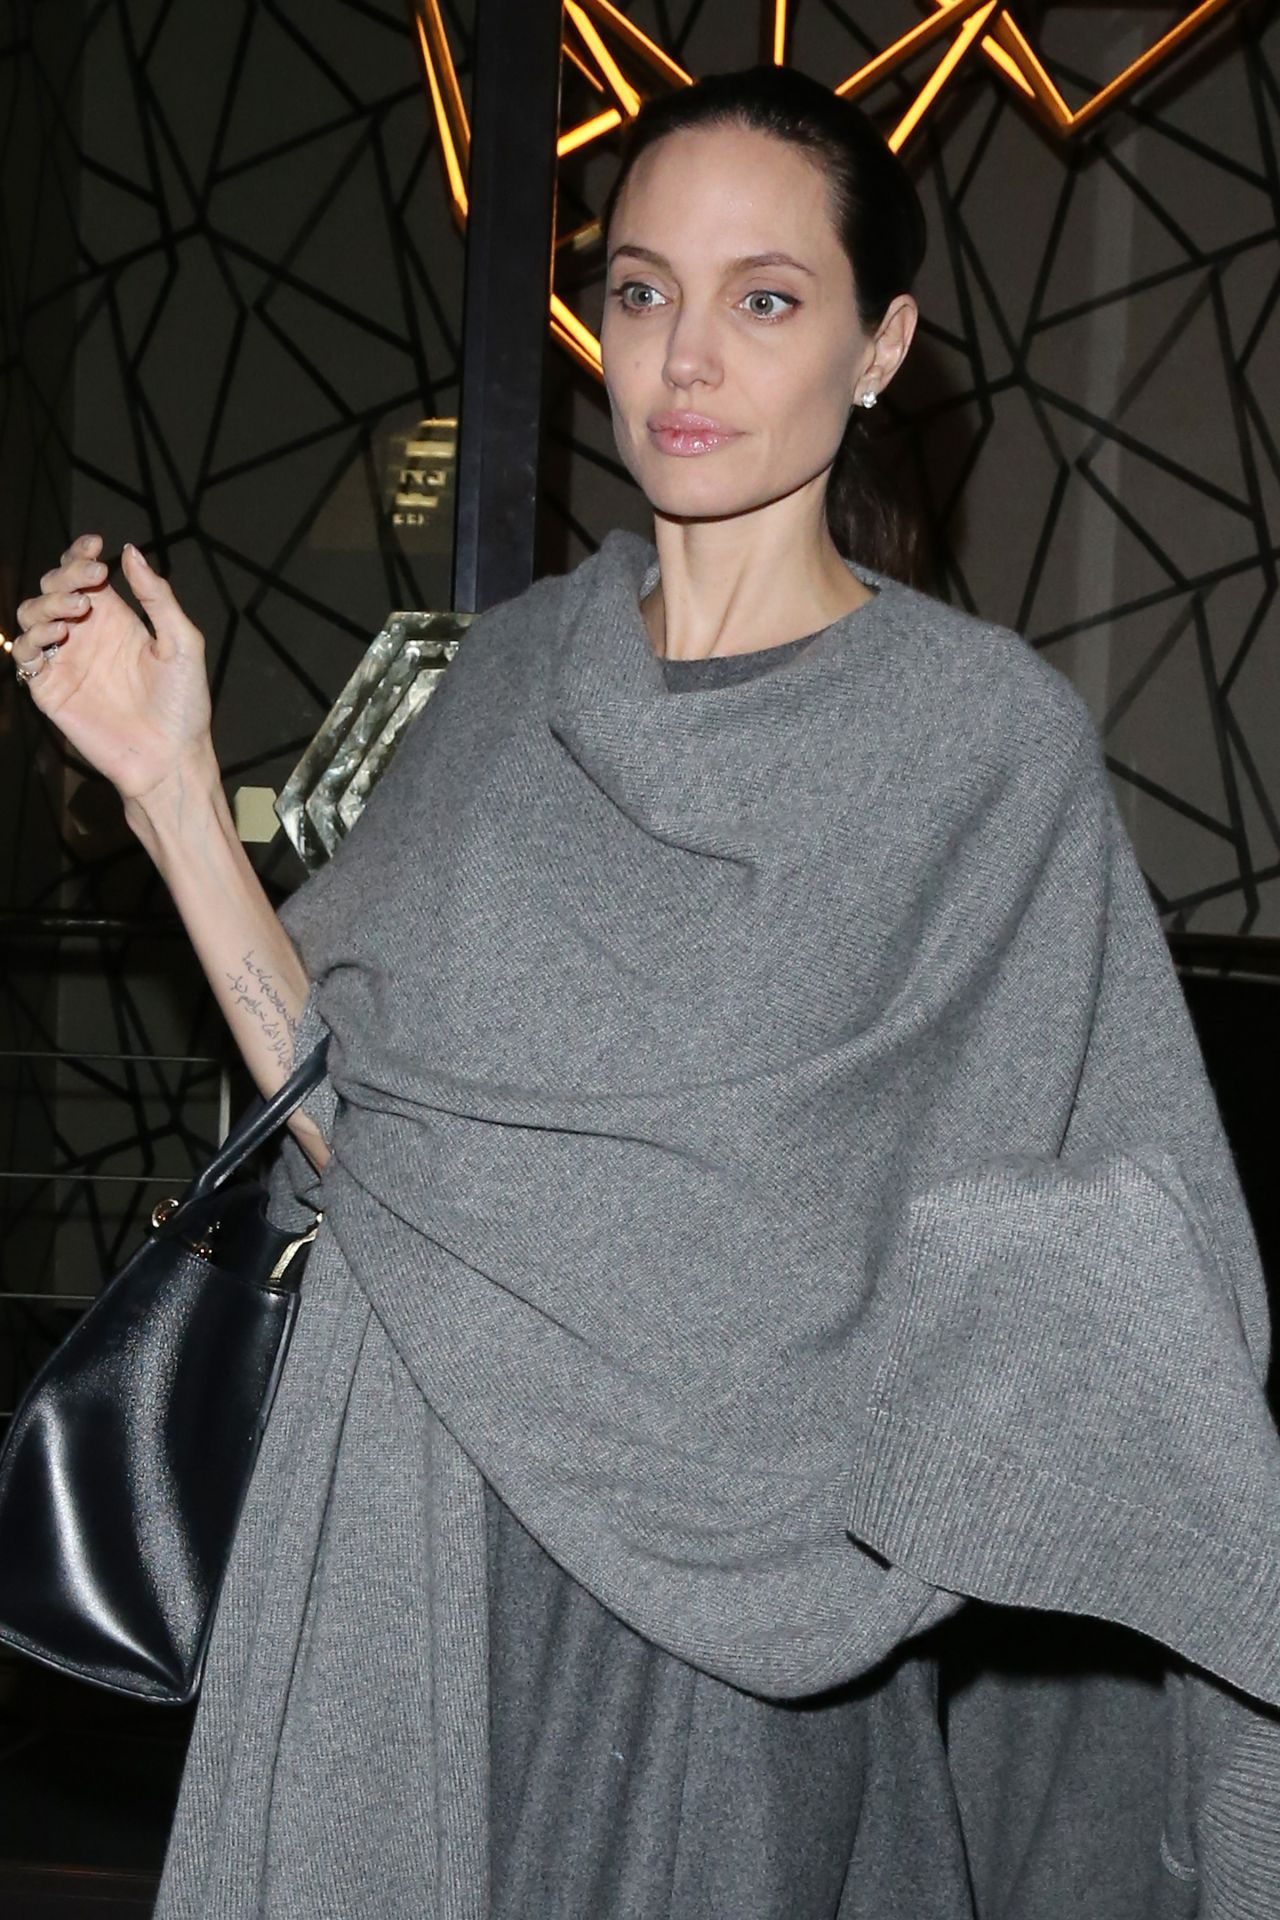 angelina-jolie-night-out-style-leaving-quaglino-s-restaurant-in-mayfair-in-london-4-26-2016-5